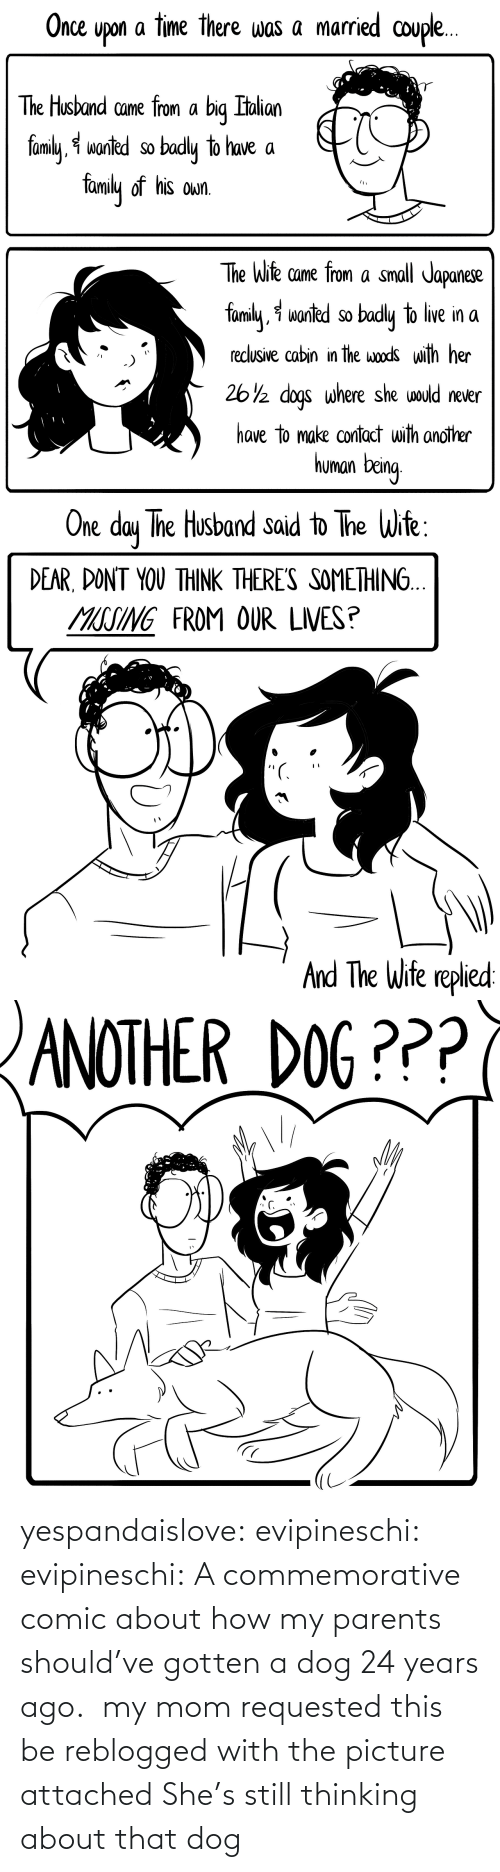 Thinking About: yespandaislove: evipineschi:  evipineschi: A commemorative comic about how my parents should've gotten a dog 24 years ago.  my mom requested this be reblogged with the picture attached   She's still thinking about that dog